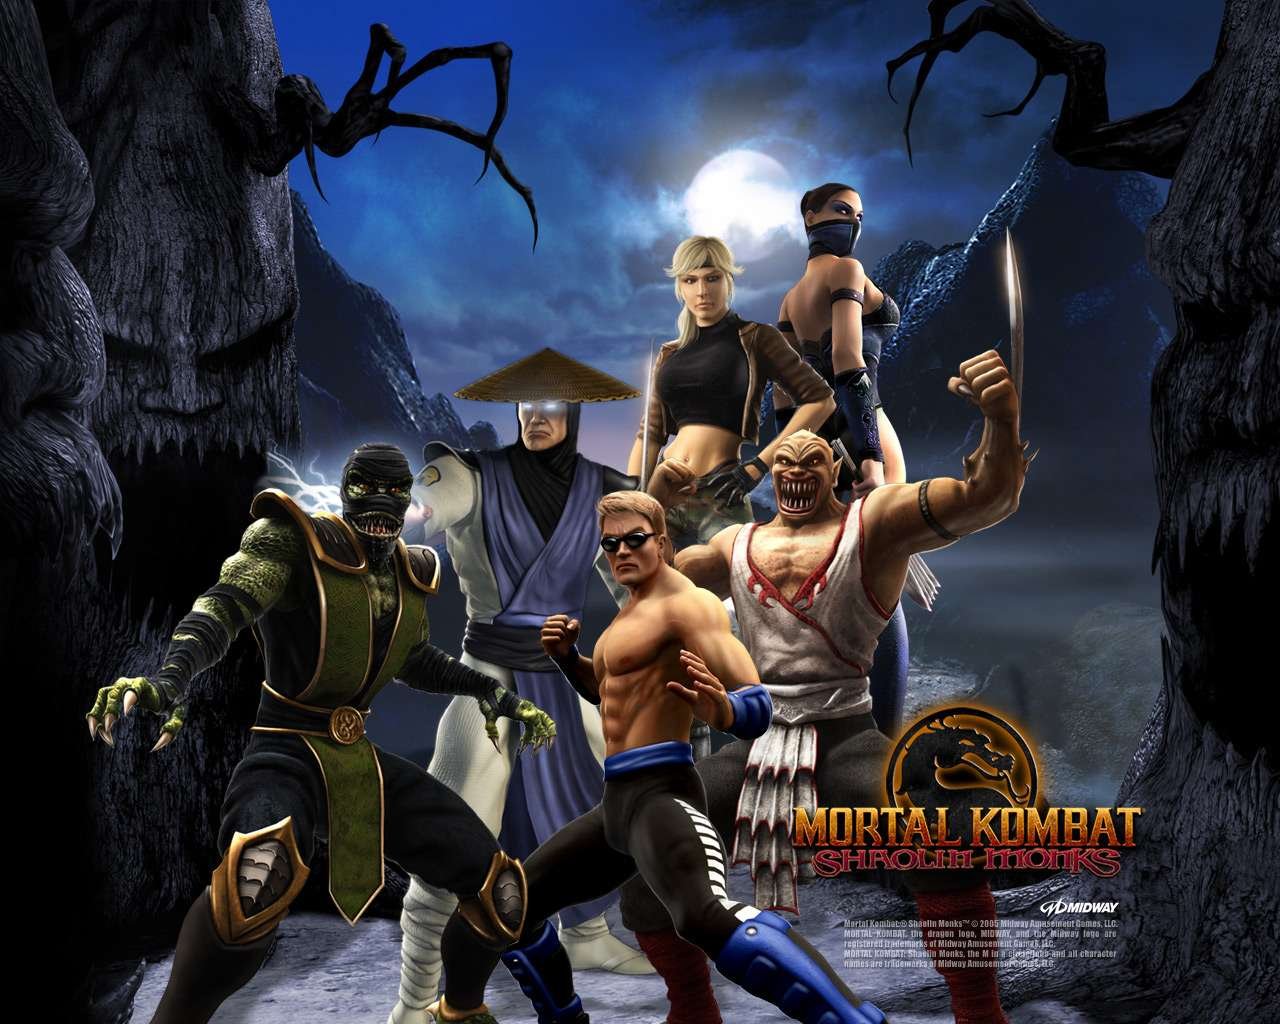 PS4 Mortal Kombat Shaolin Monks Ps2 to PS4